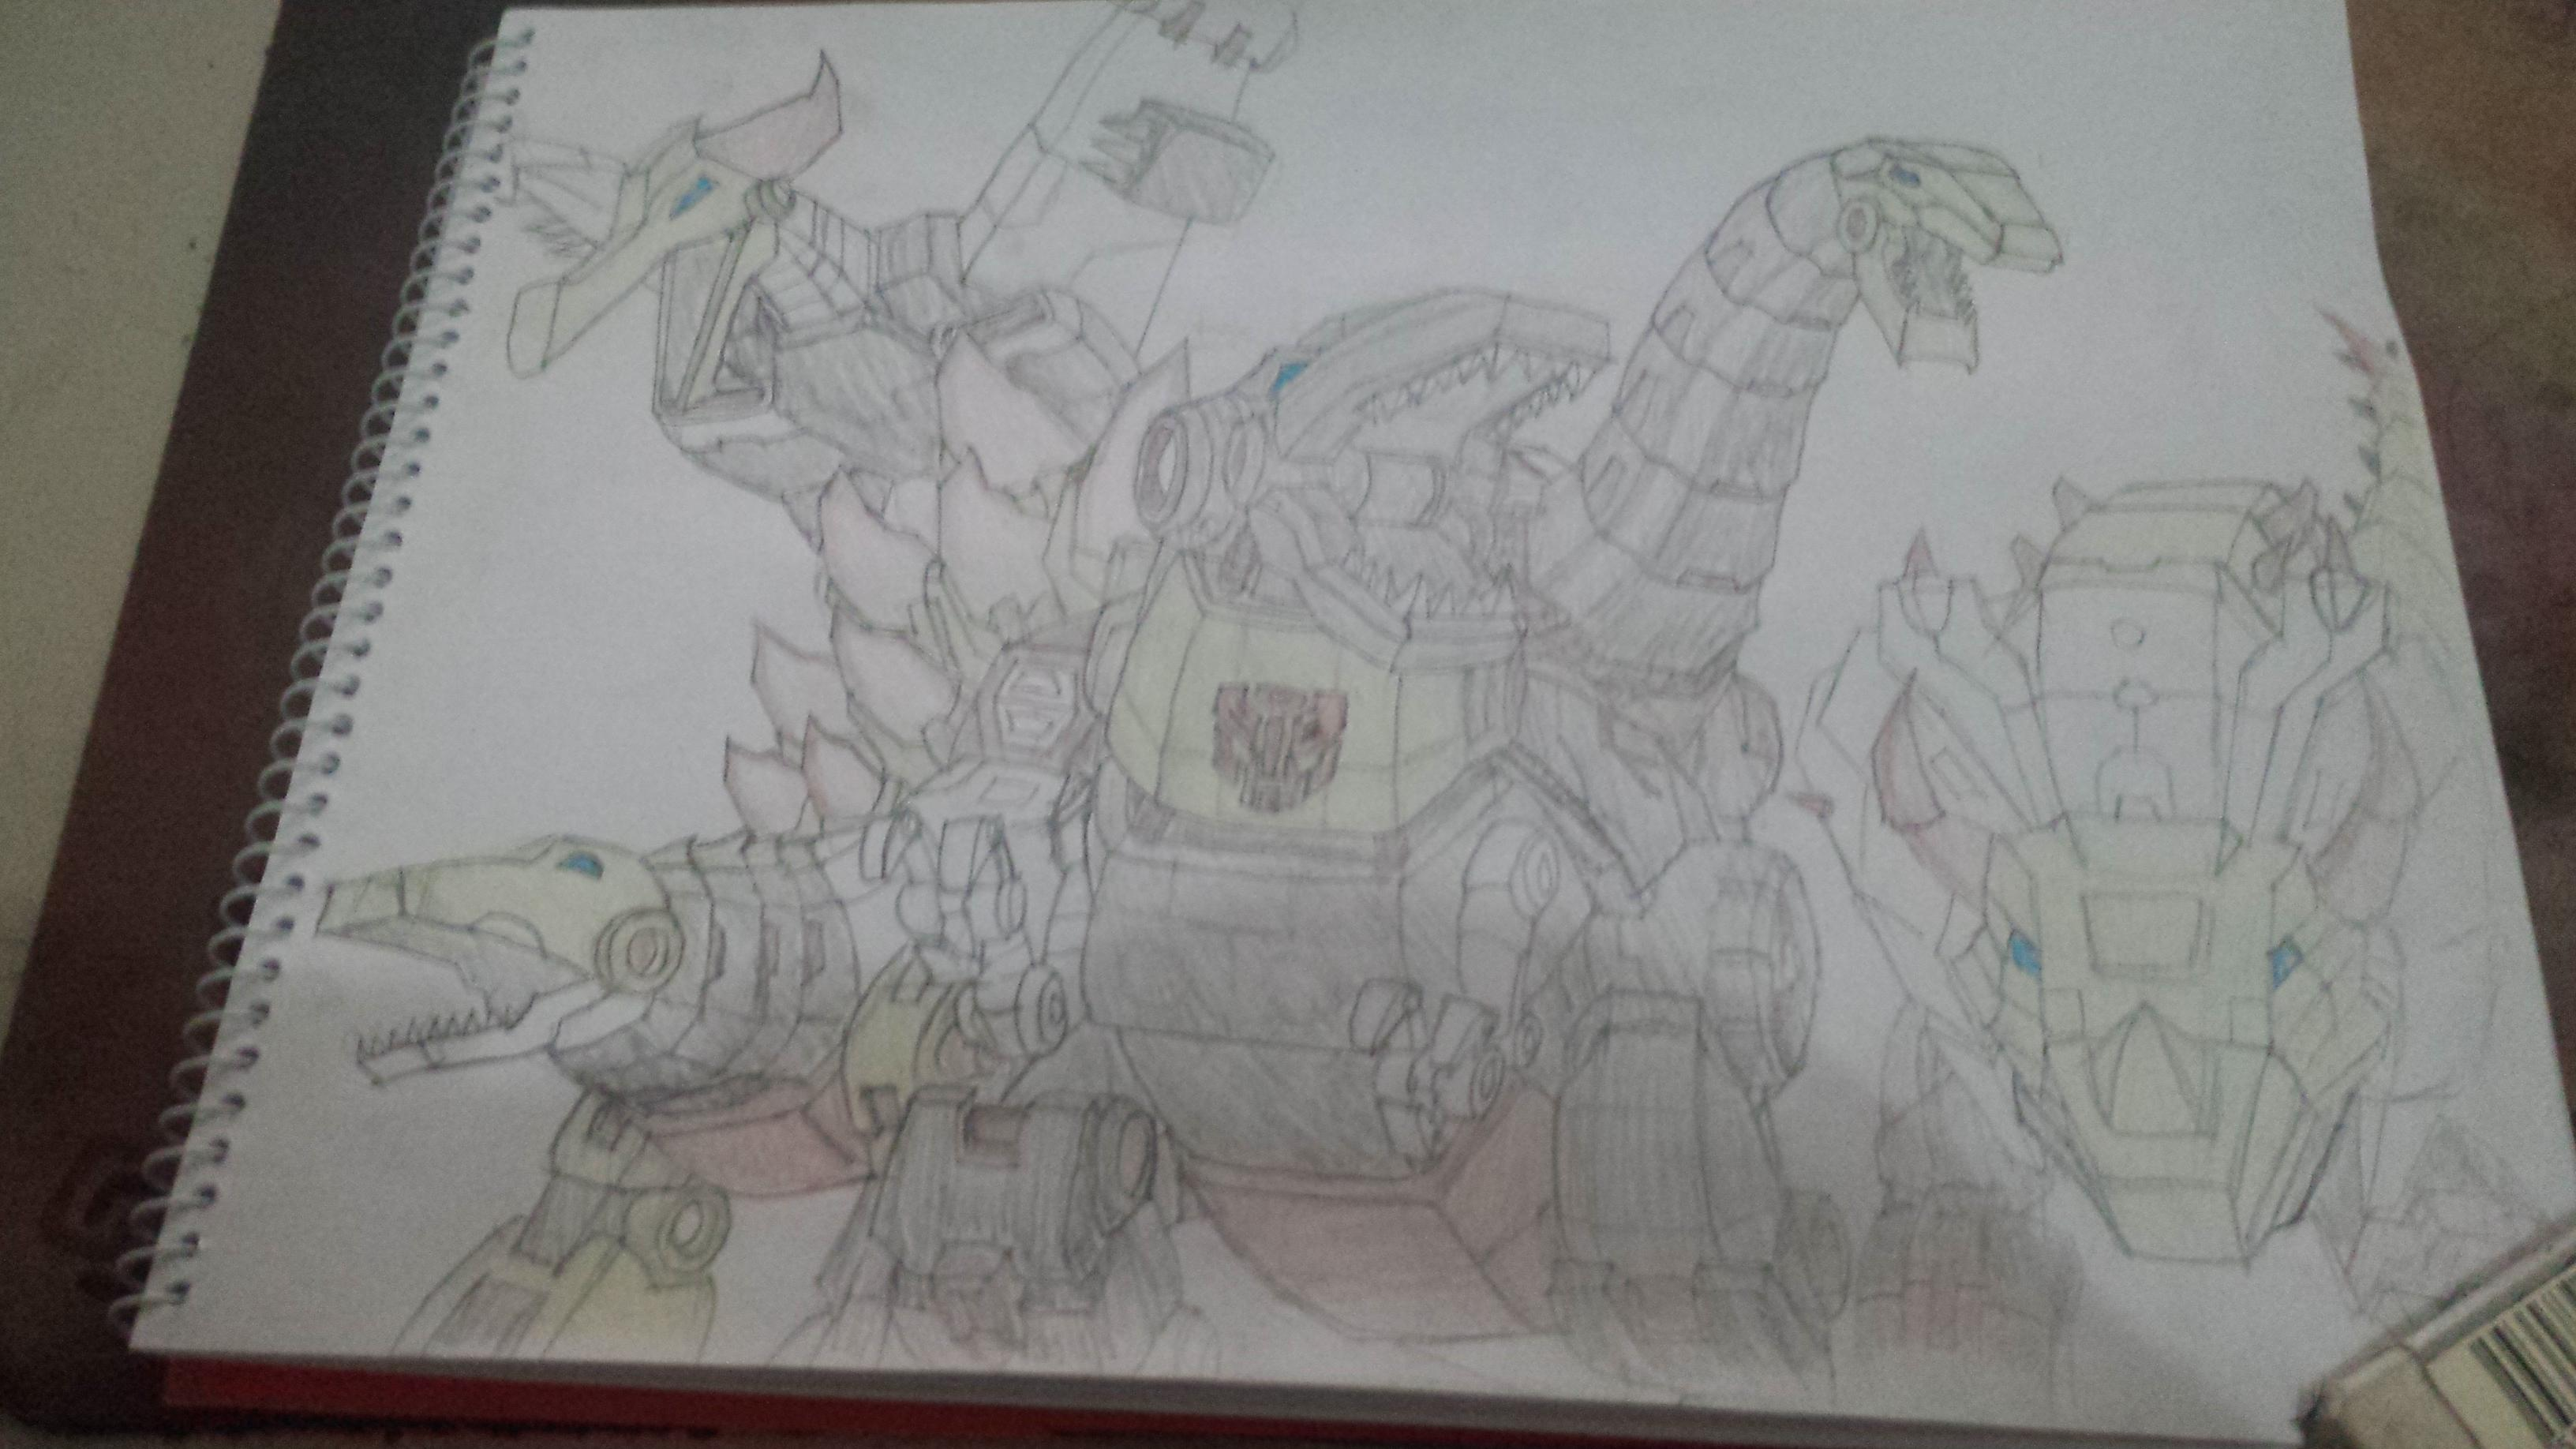 Posted on r/transformers: Dinobots pencil sketch I did a couple of years back